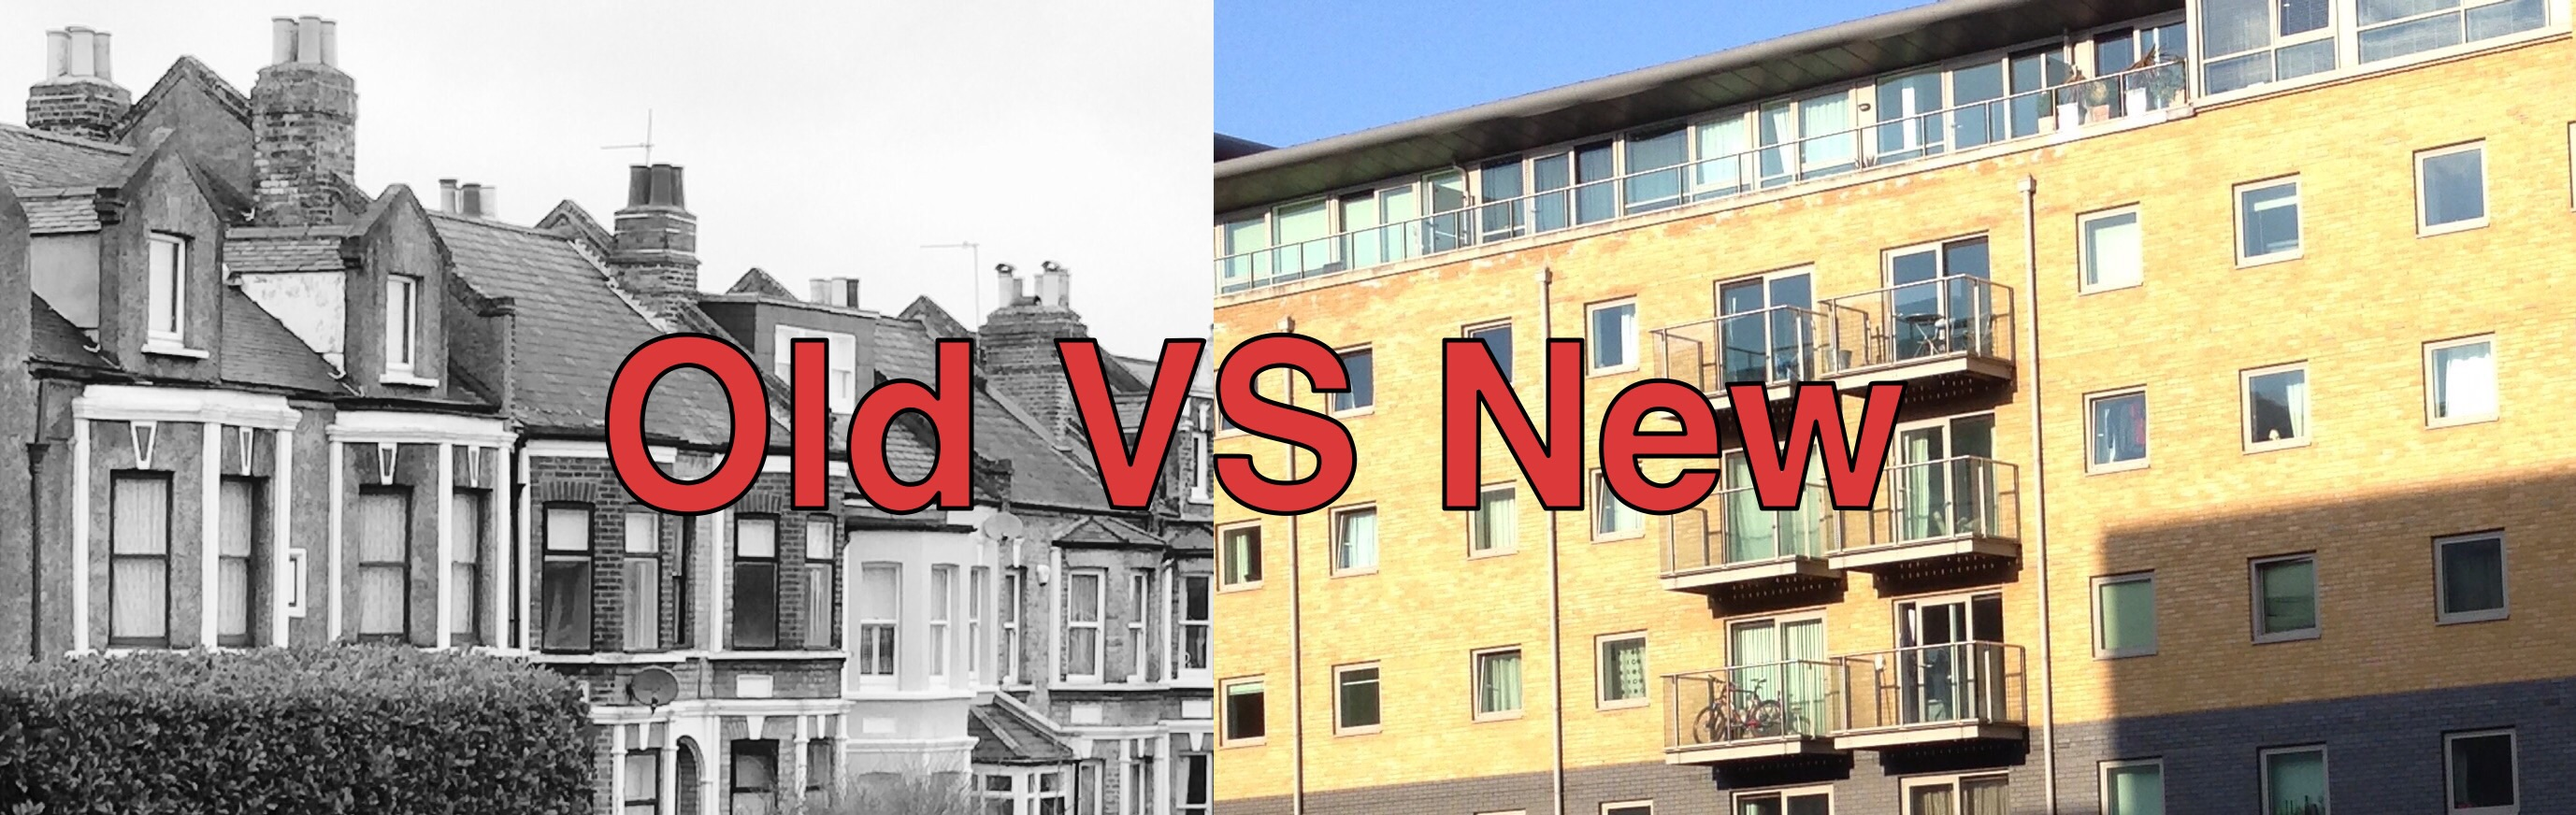 New build or not when investing in woolwich the se18 property blog - Should i buy or build a new home pros and cons for either choice ...